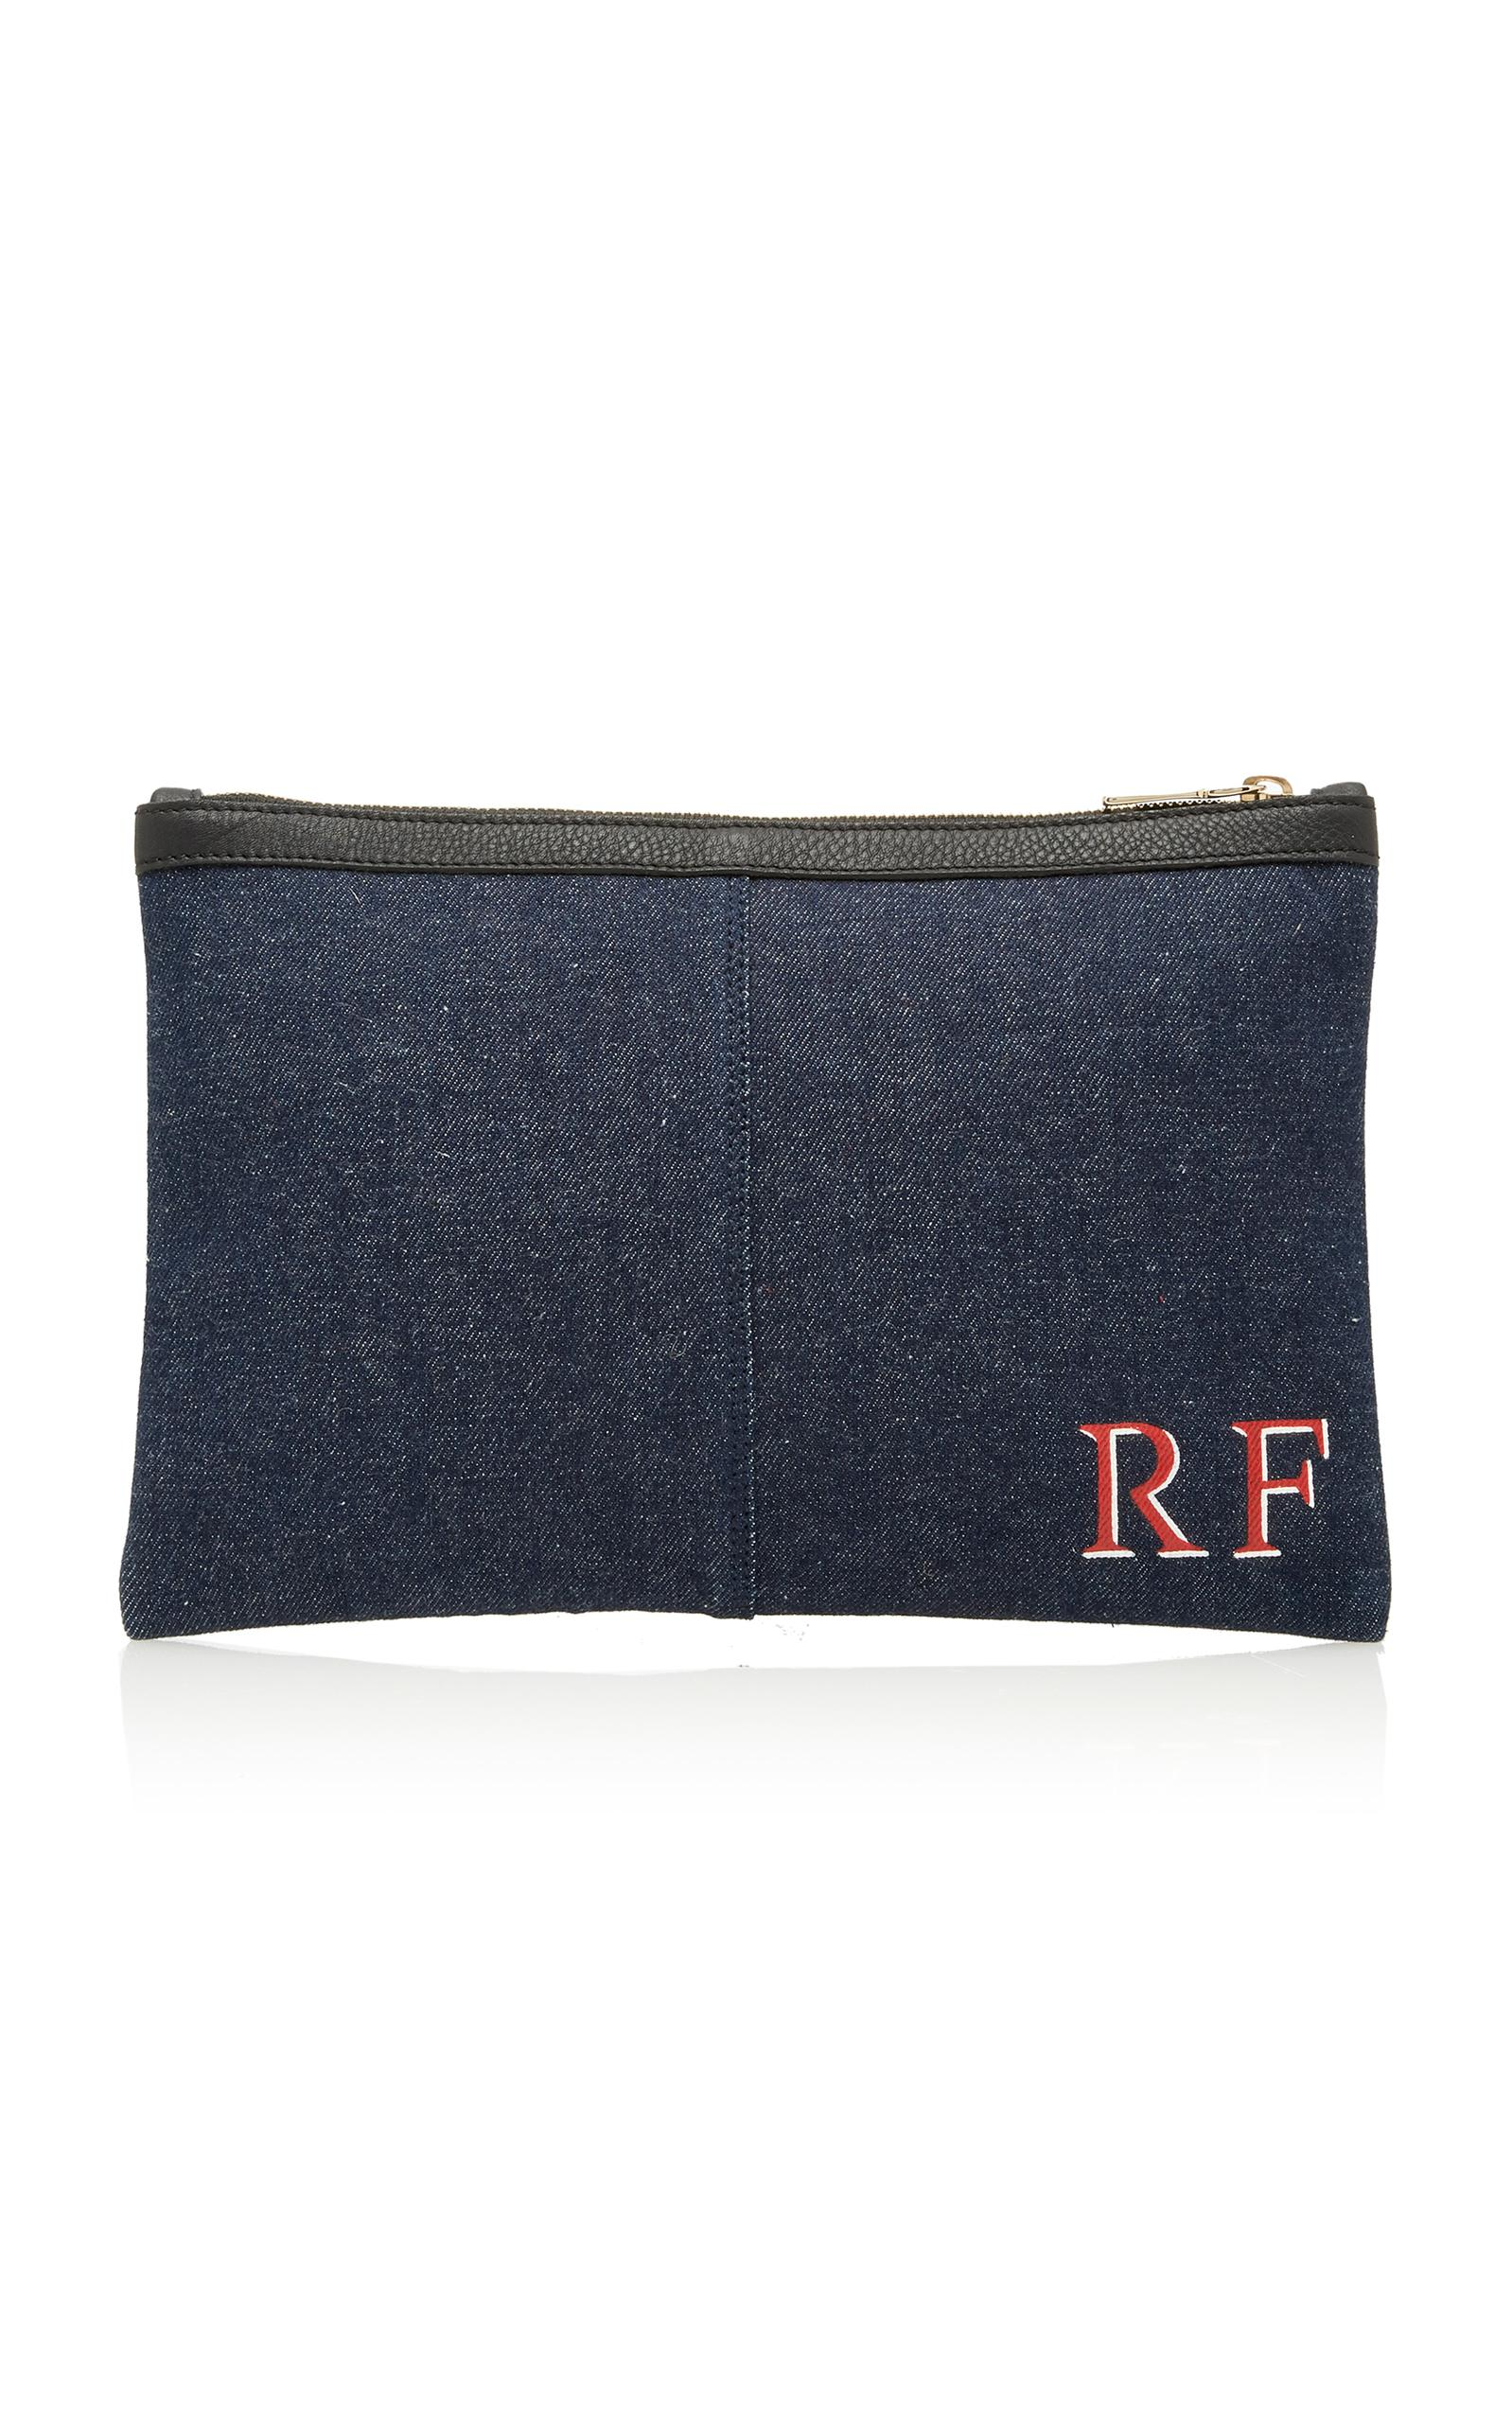 Rae Feather Denim Leather Clutch In Navy